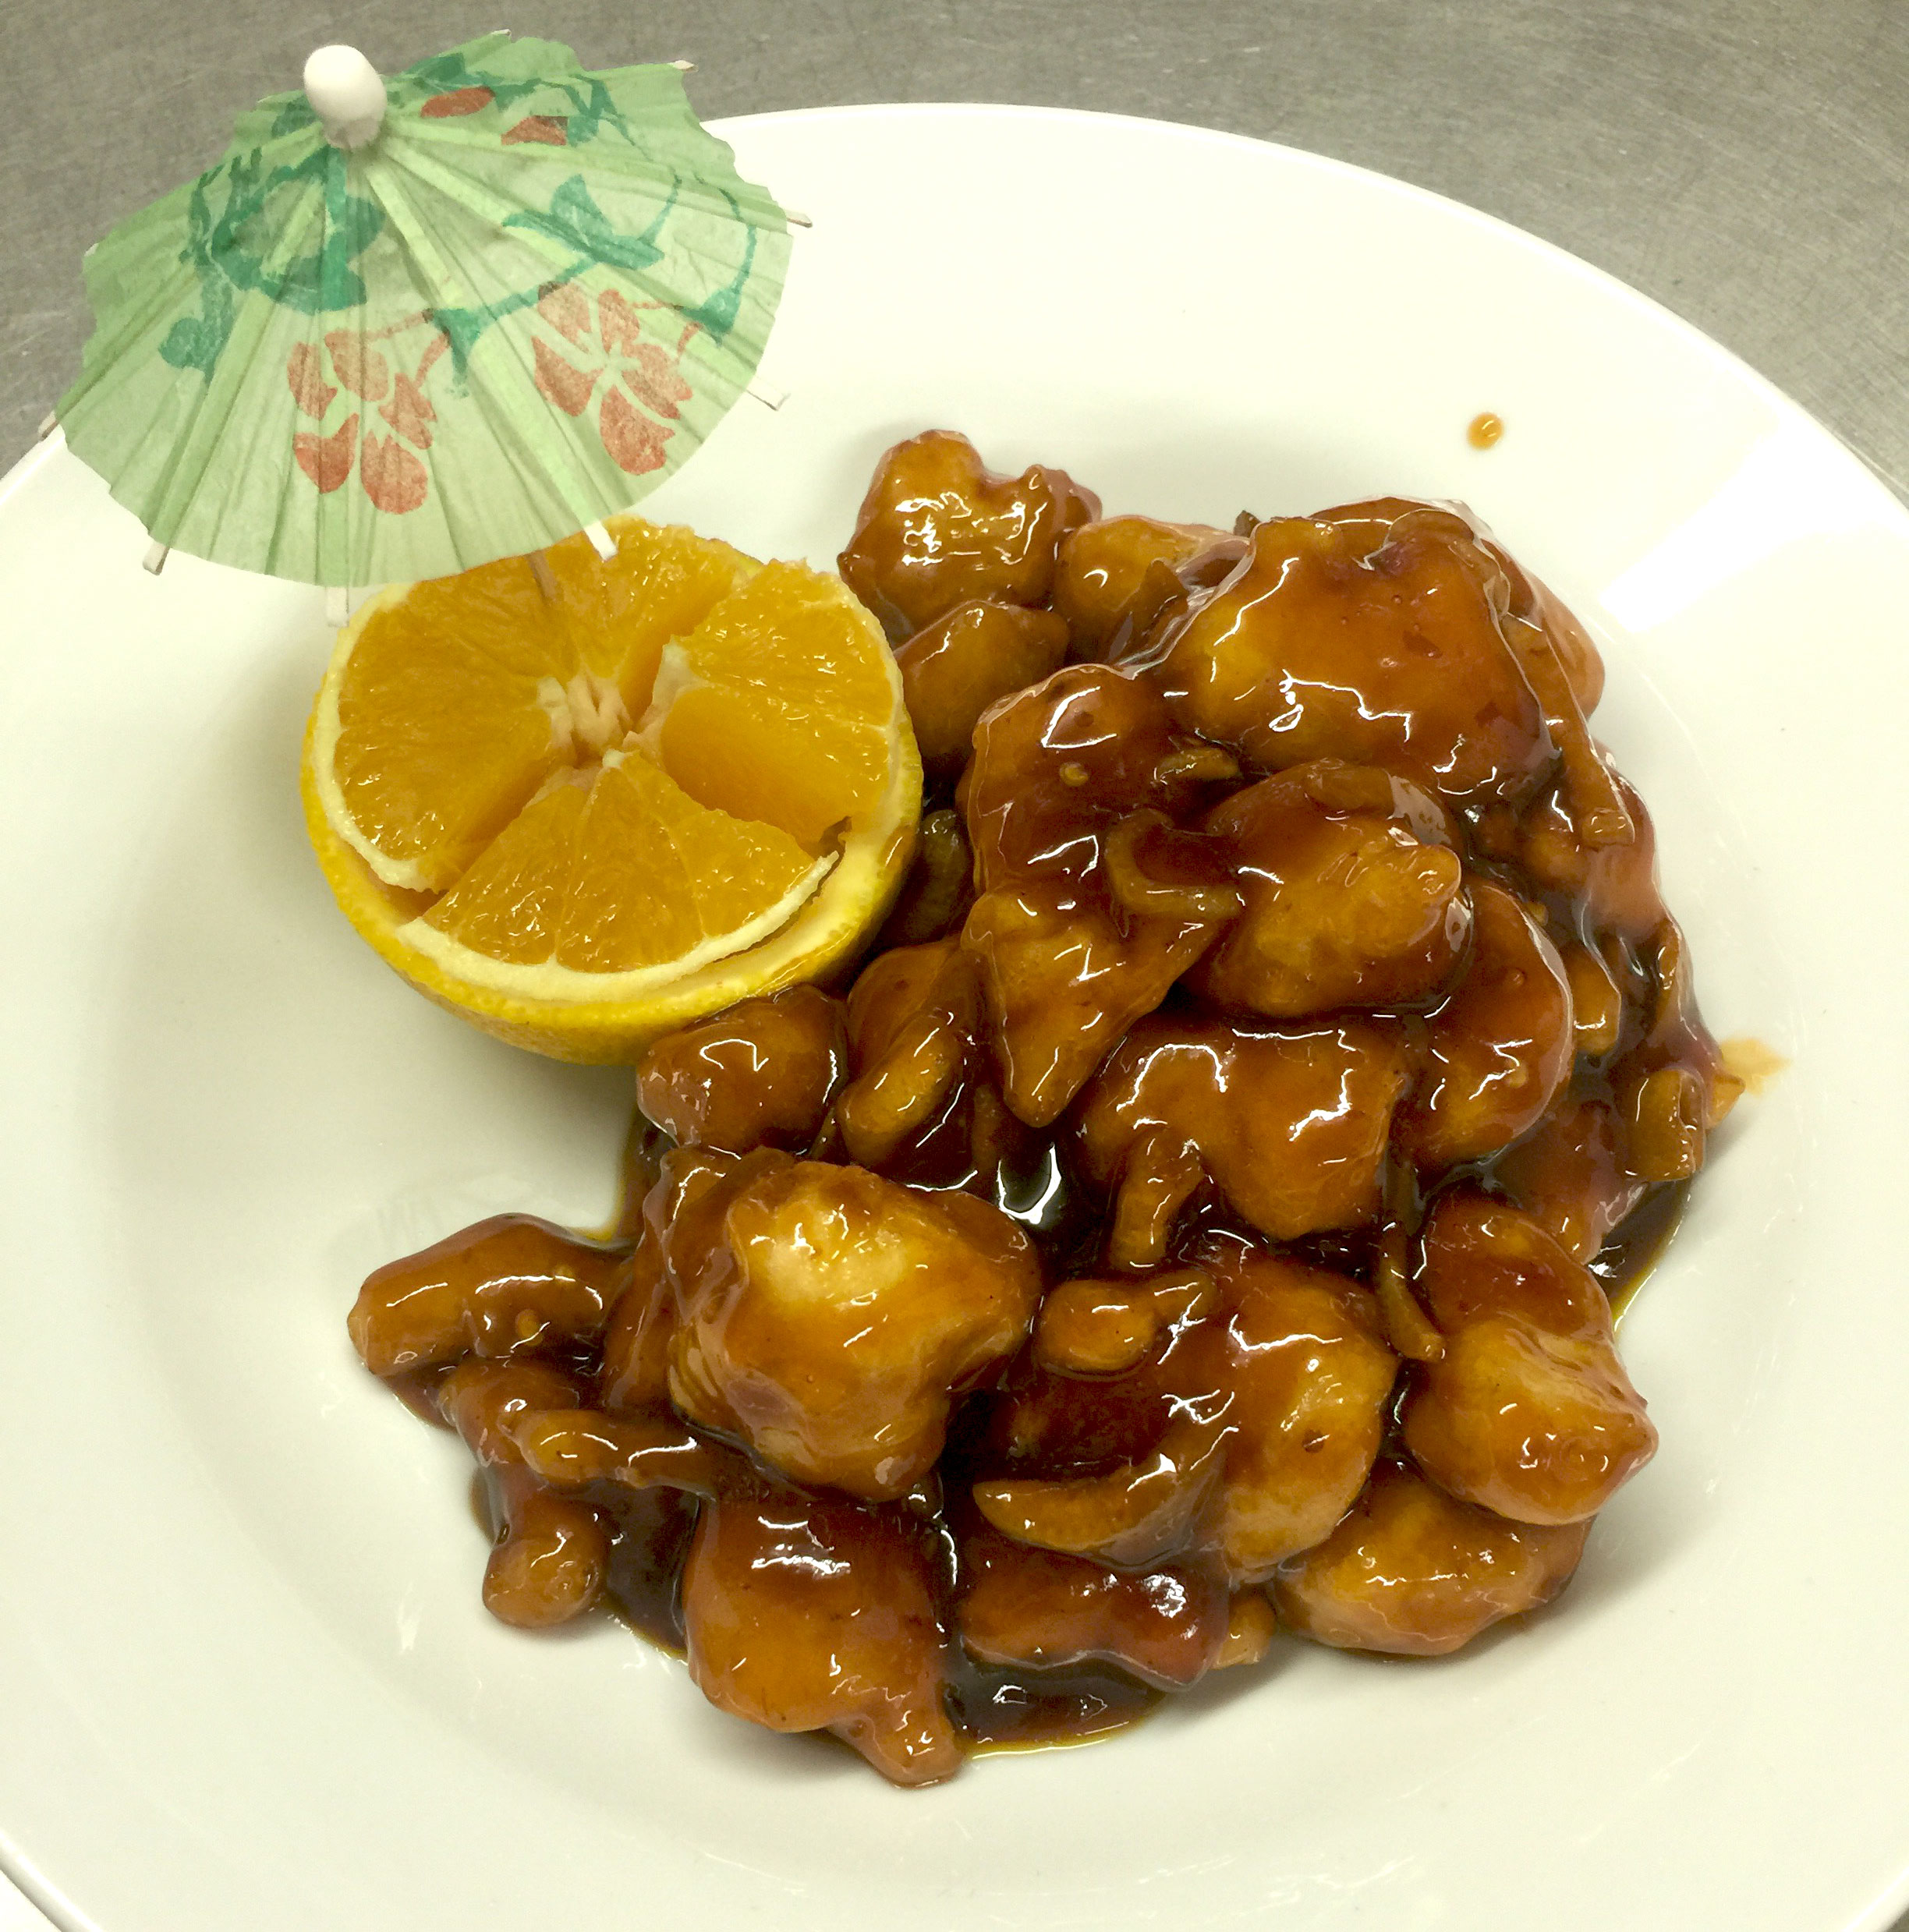 158. Orange Peel Chicken Image